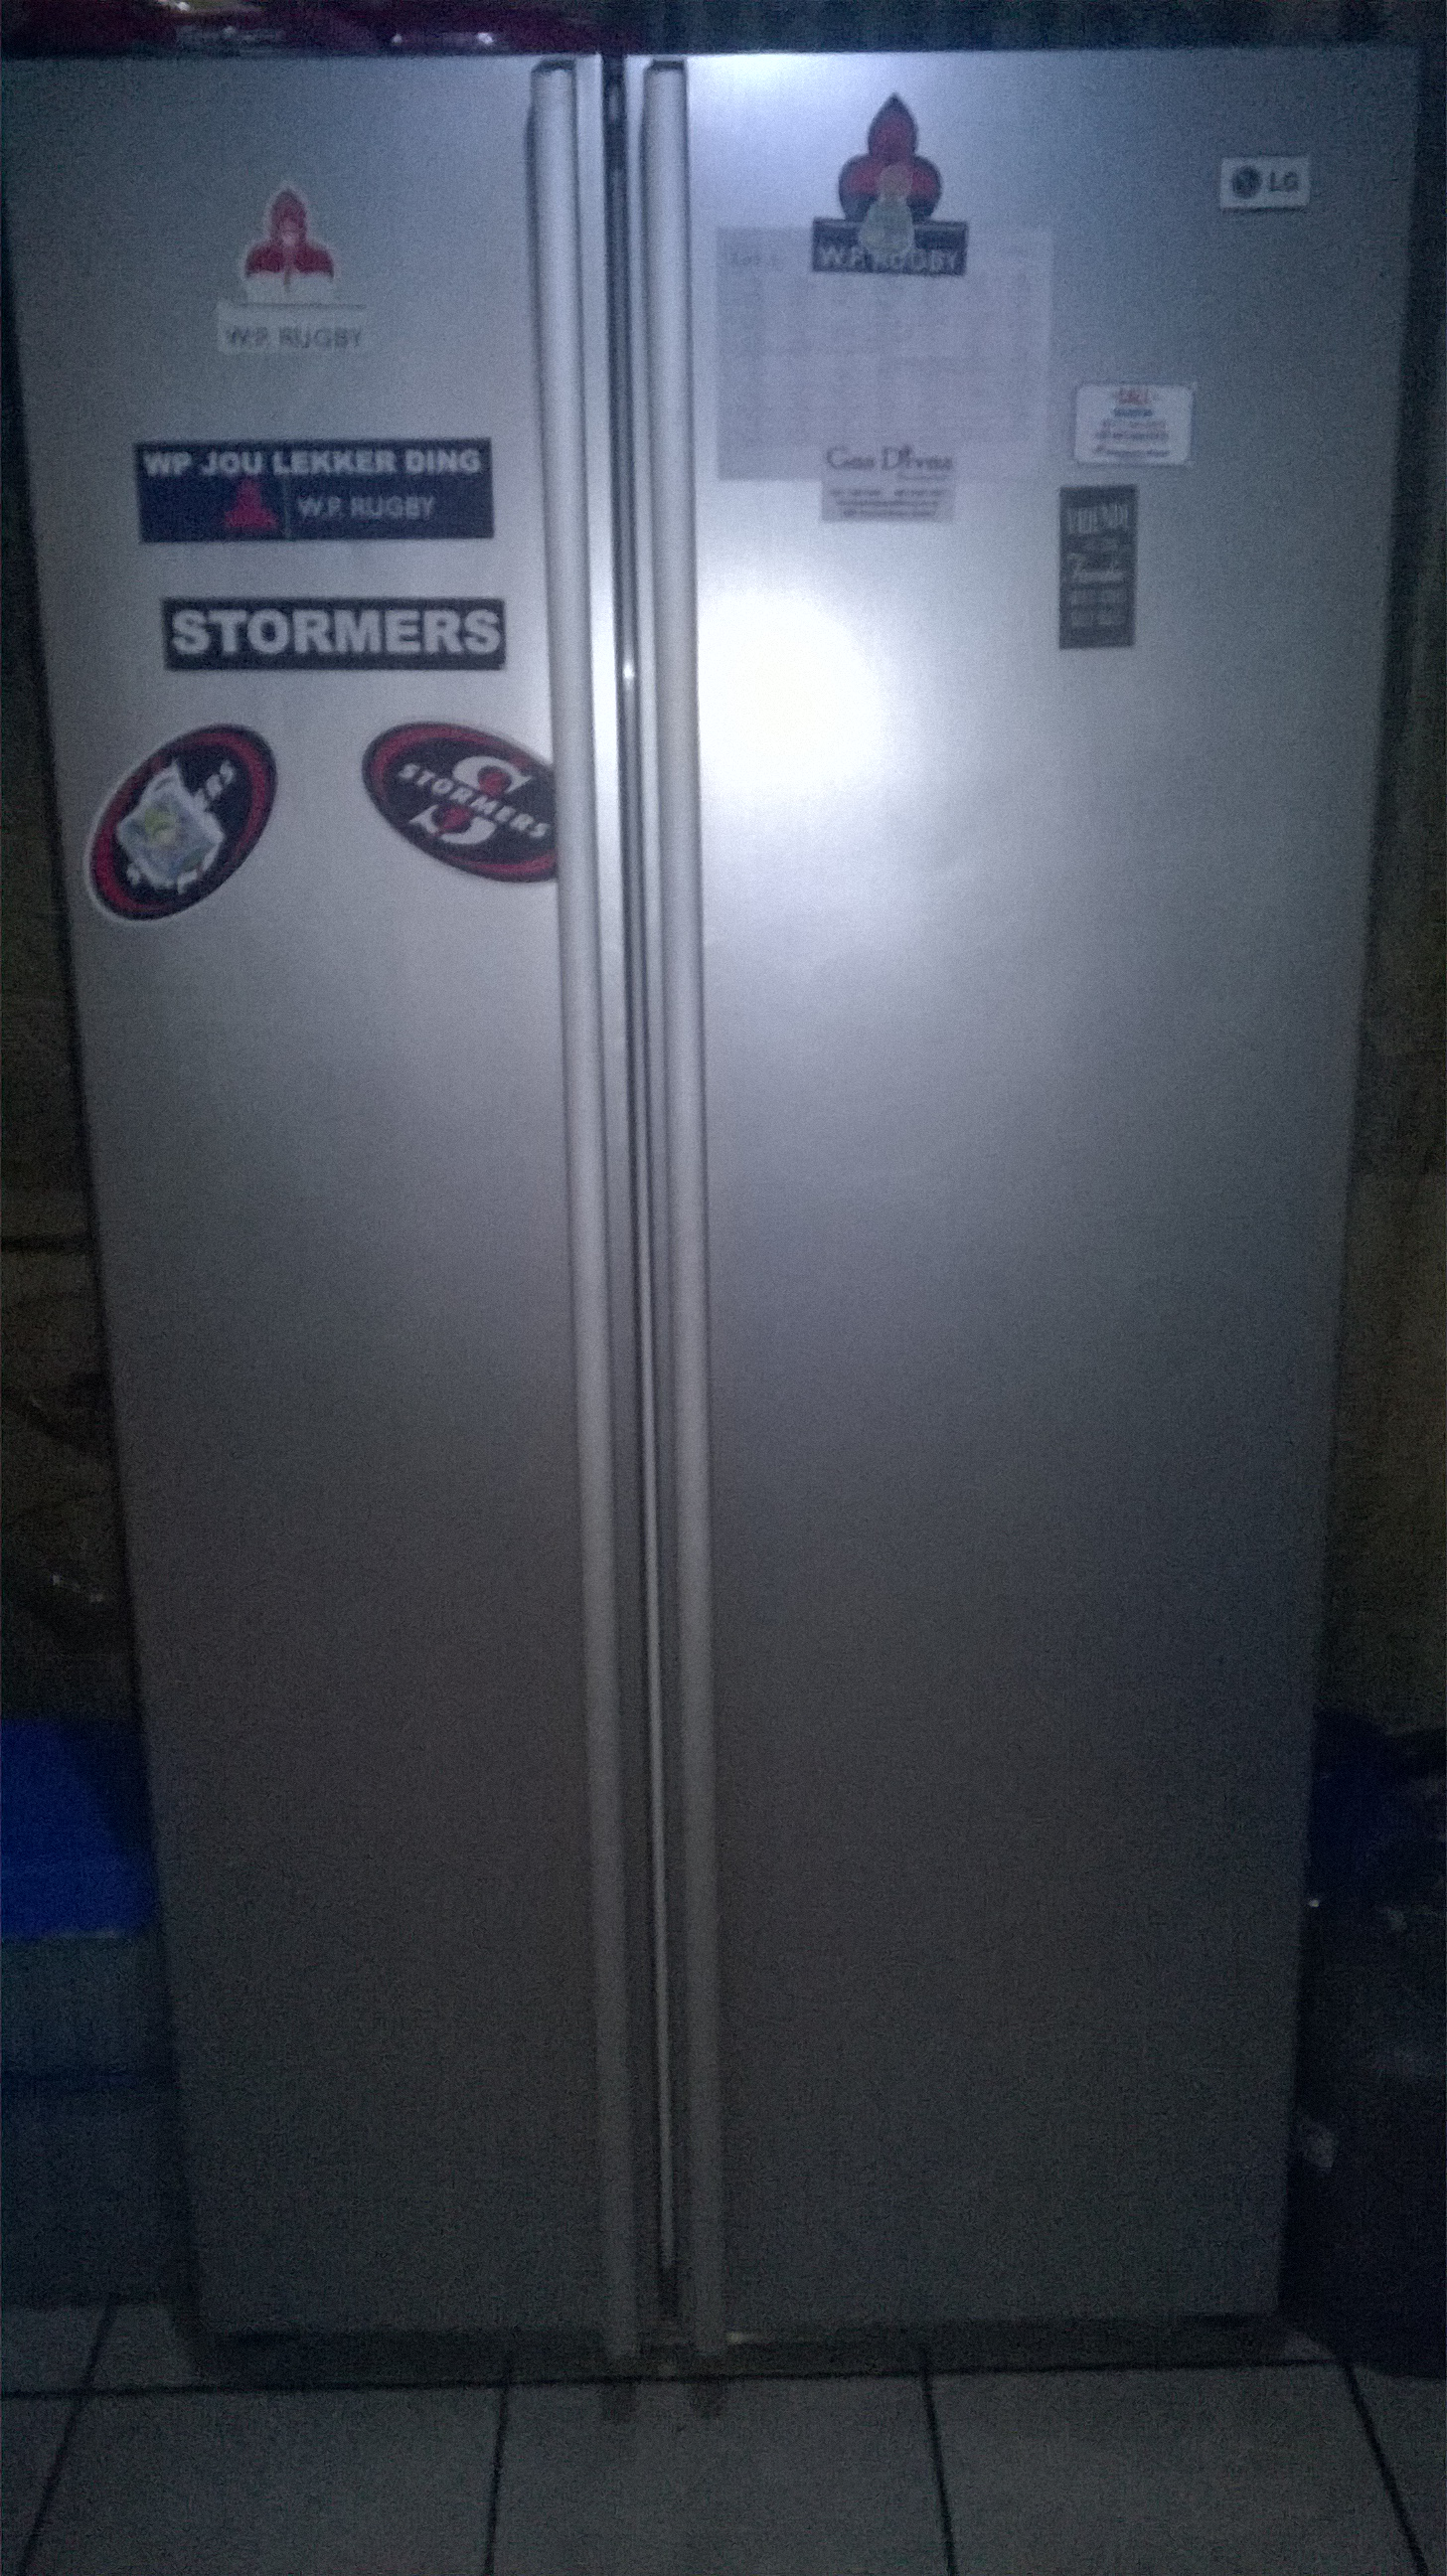 LG dubbledoor fridge freezer for sale